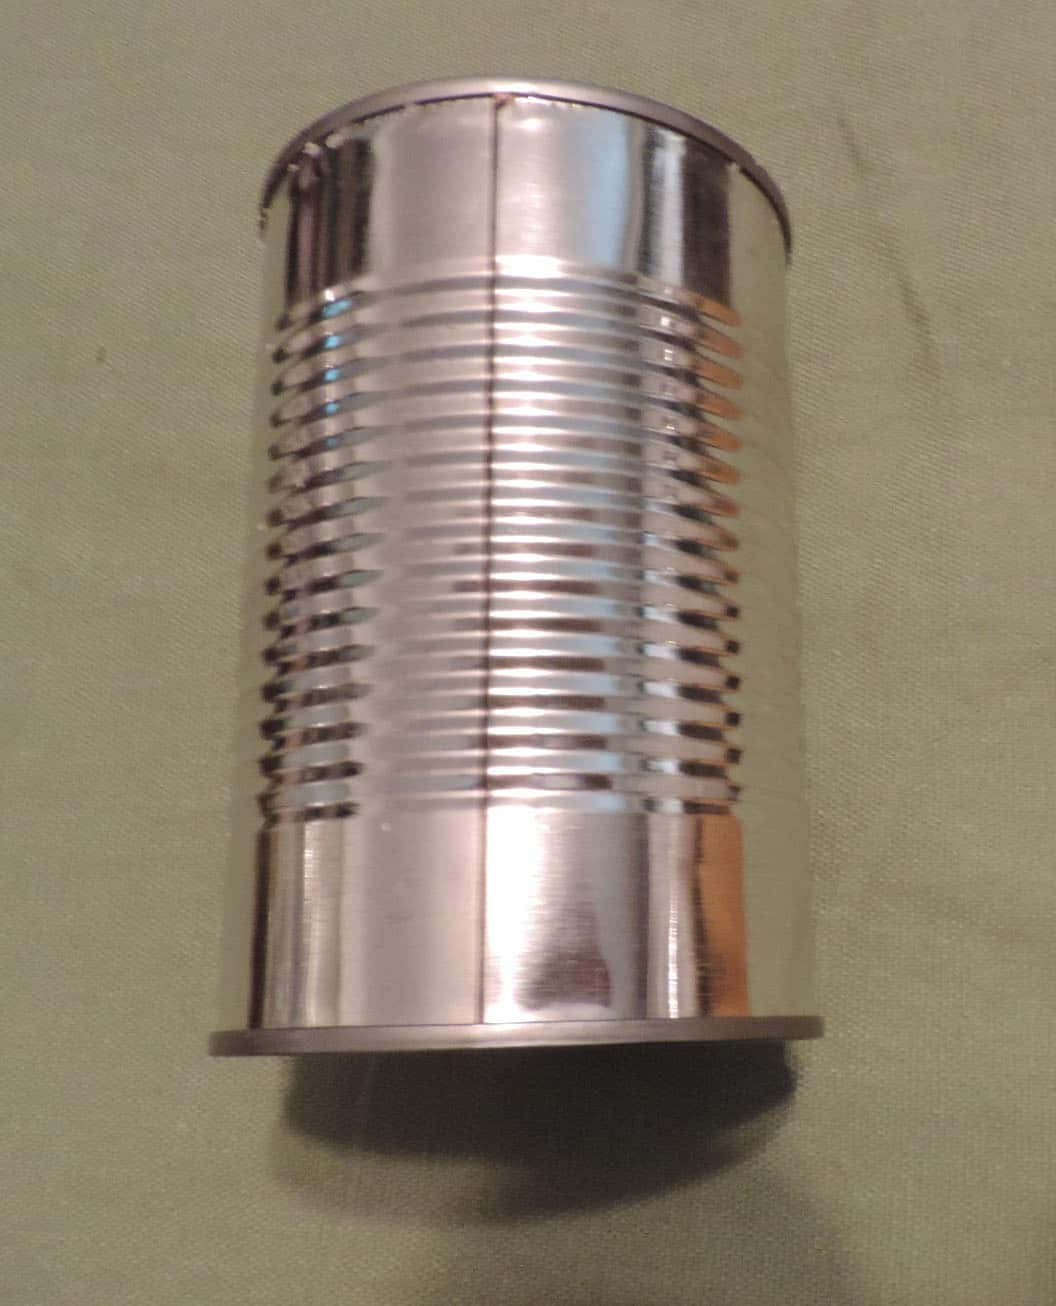 Lead Solder In Food Cans